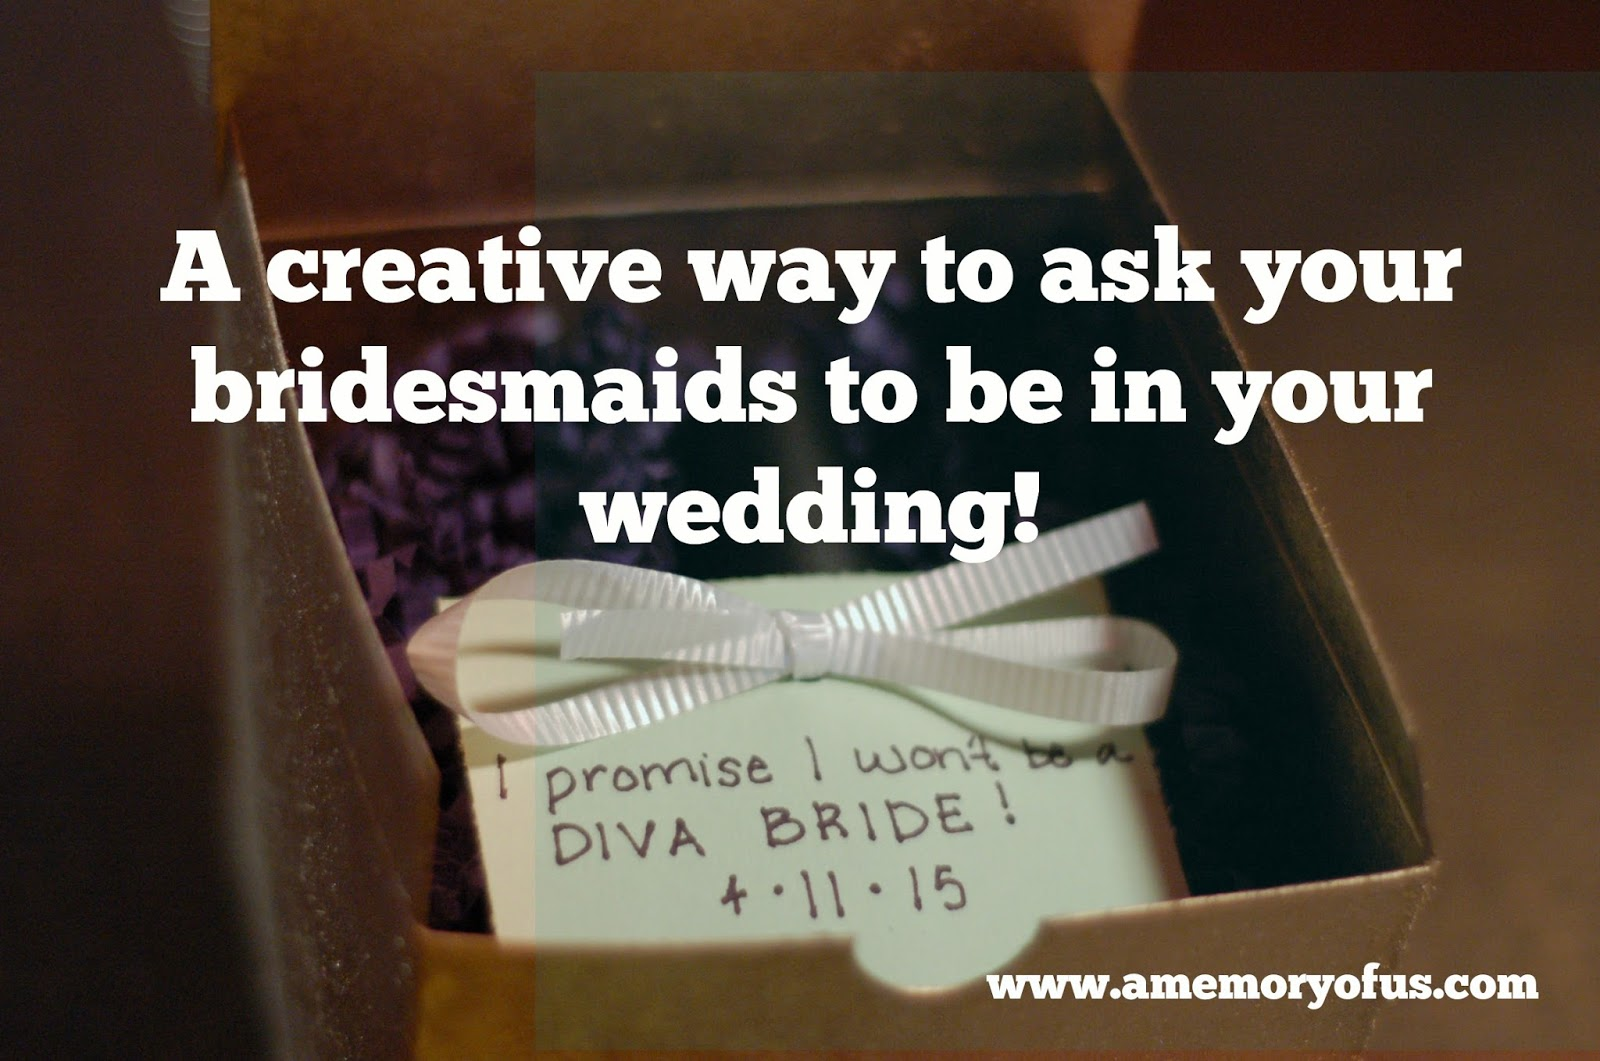 a creative way to ask your bridesmaids to be in your wedding